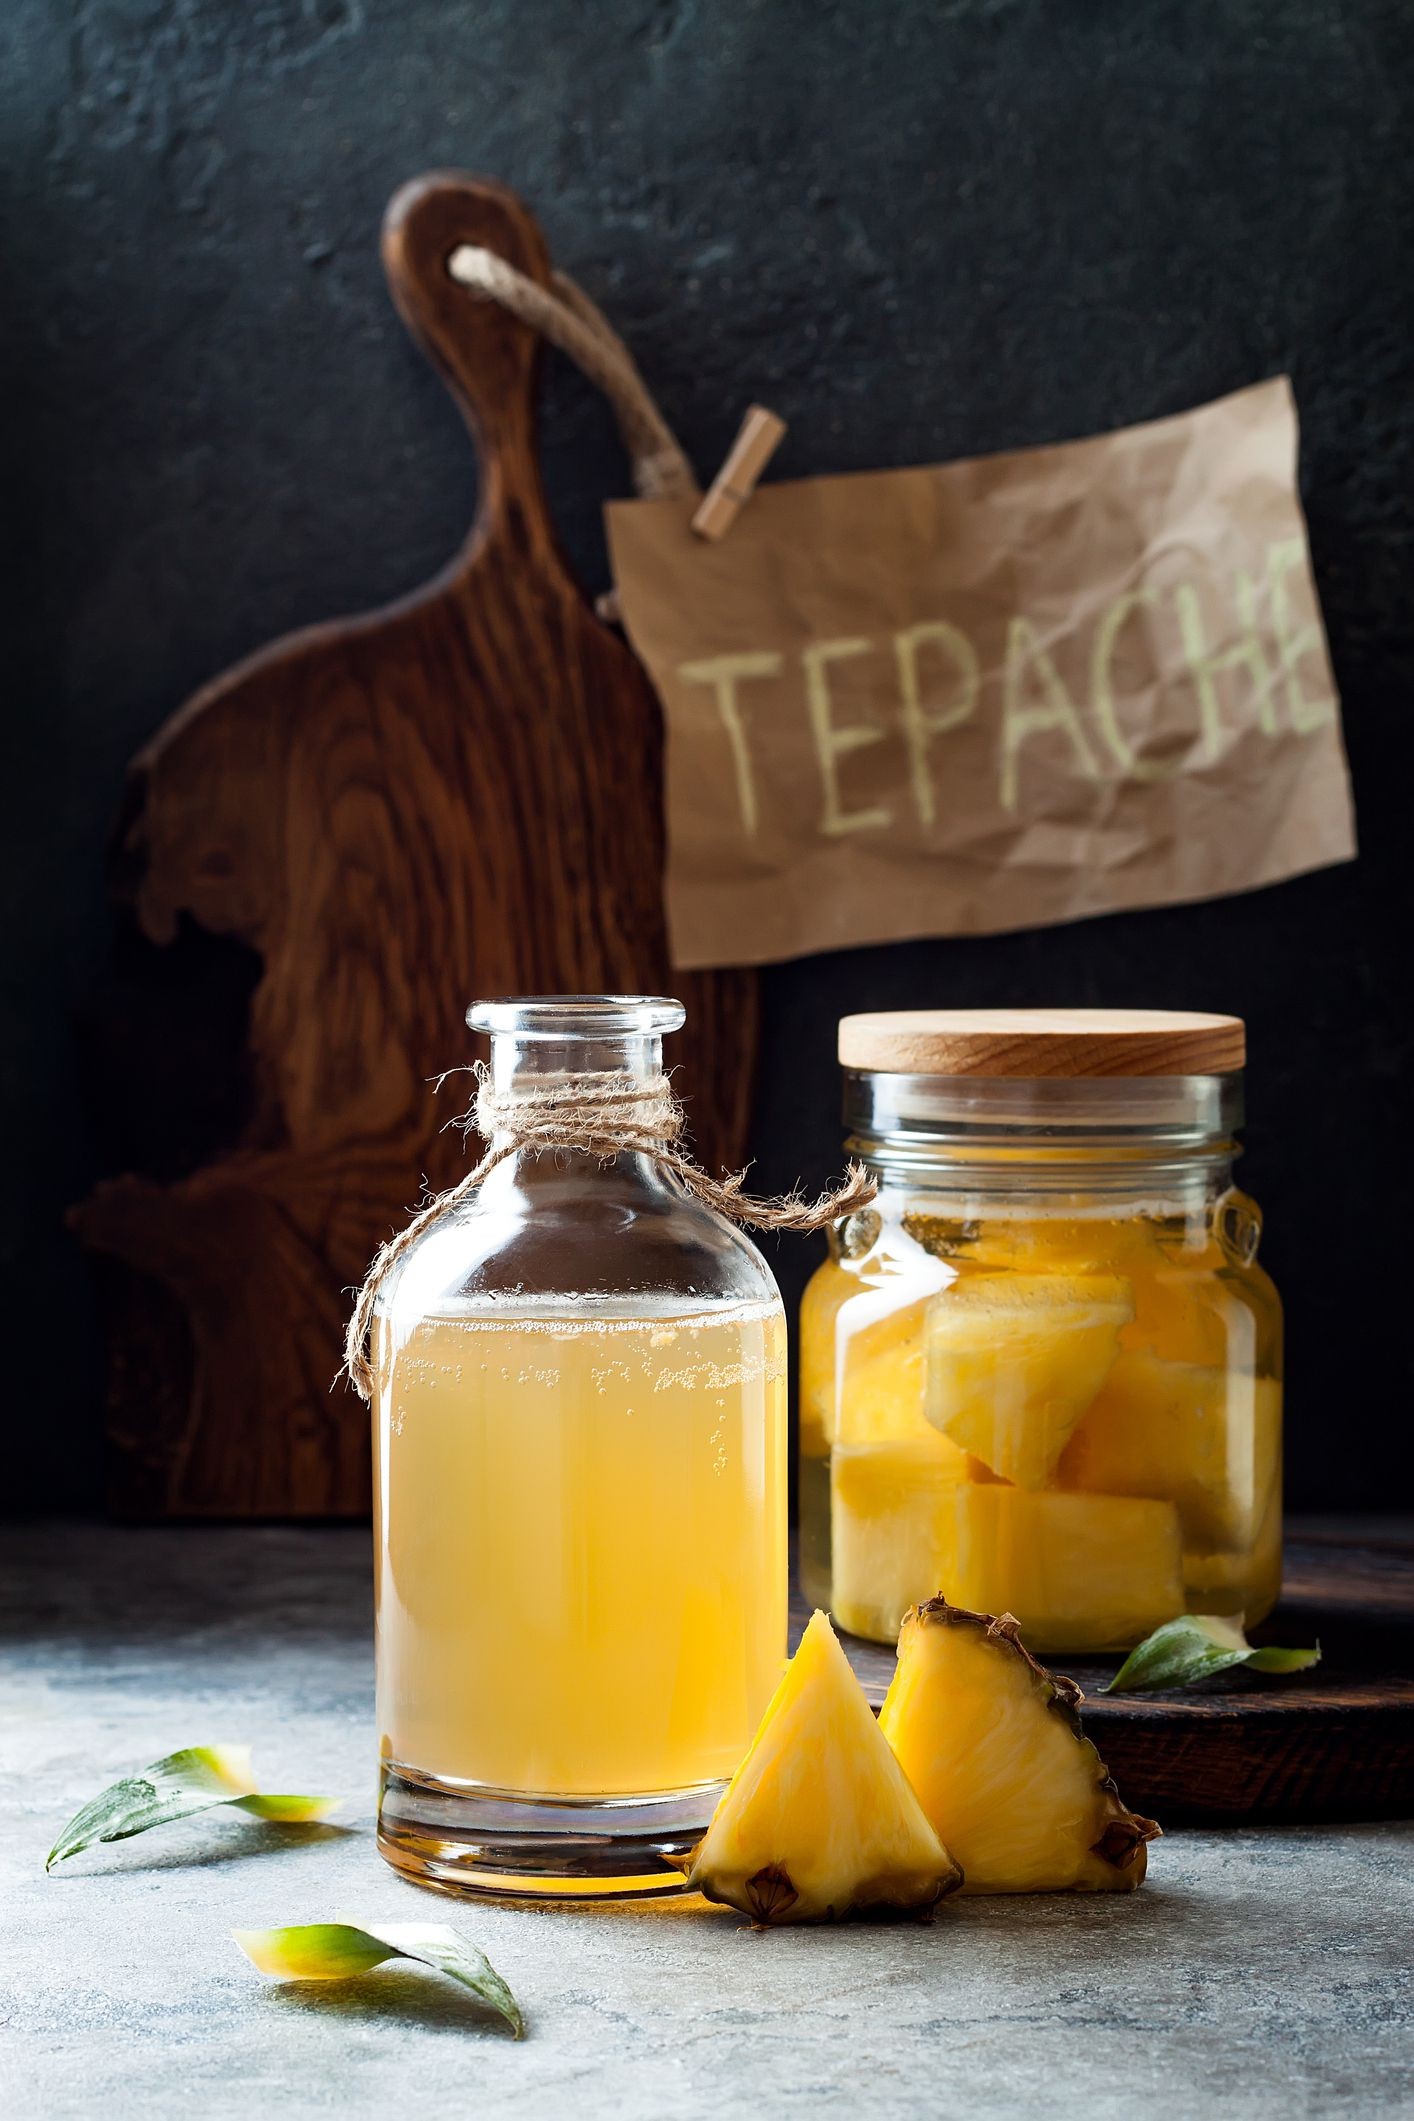 Pineapple Tepache Recipe